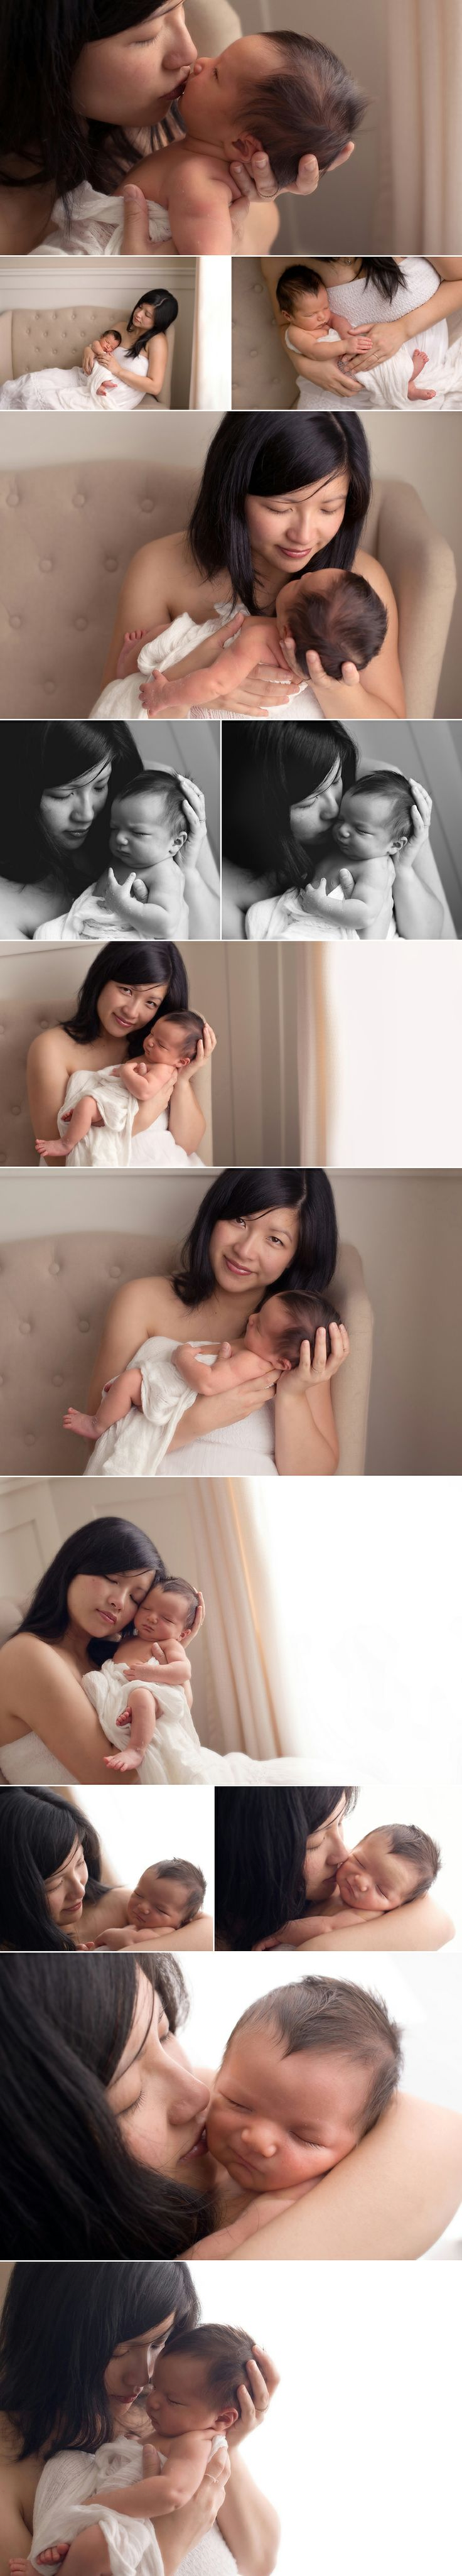 Love how the light catches on the textured knitted blanket. Also love many of the mom and baby poses here as well. The connection, emotion and framing are lovely.